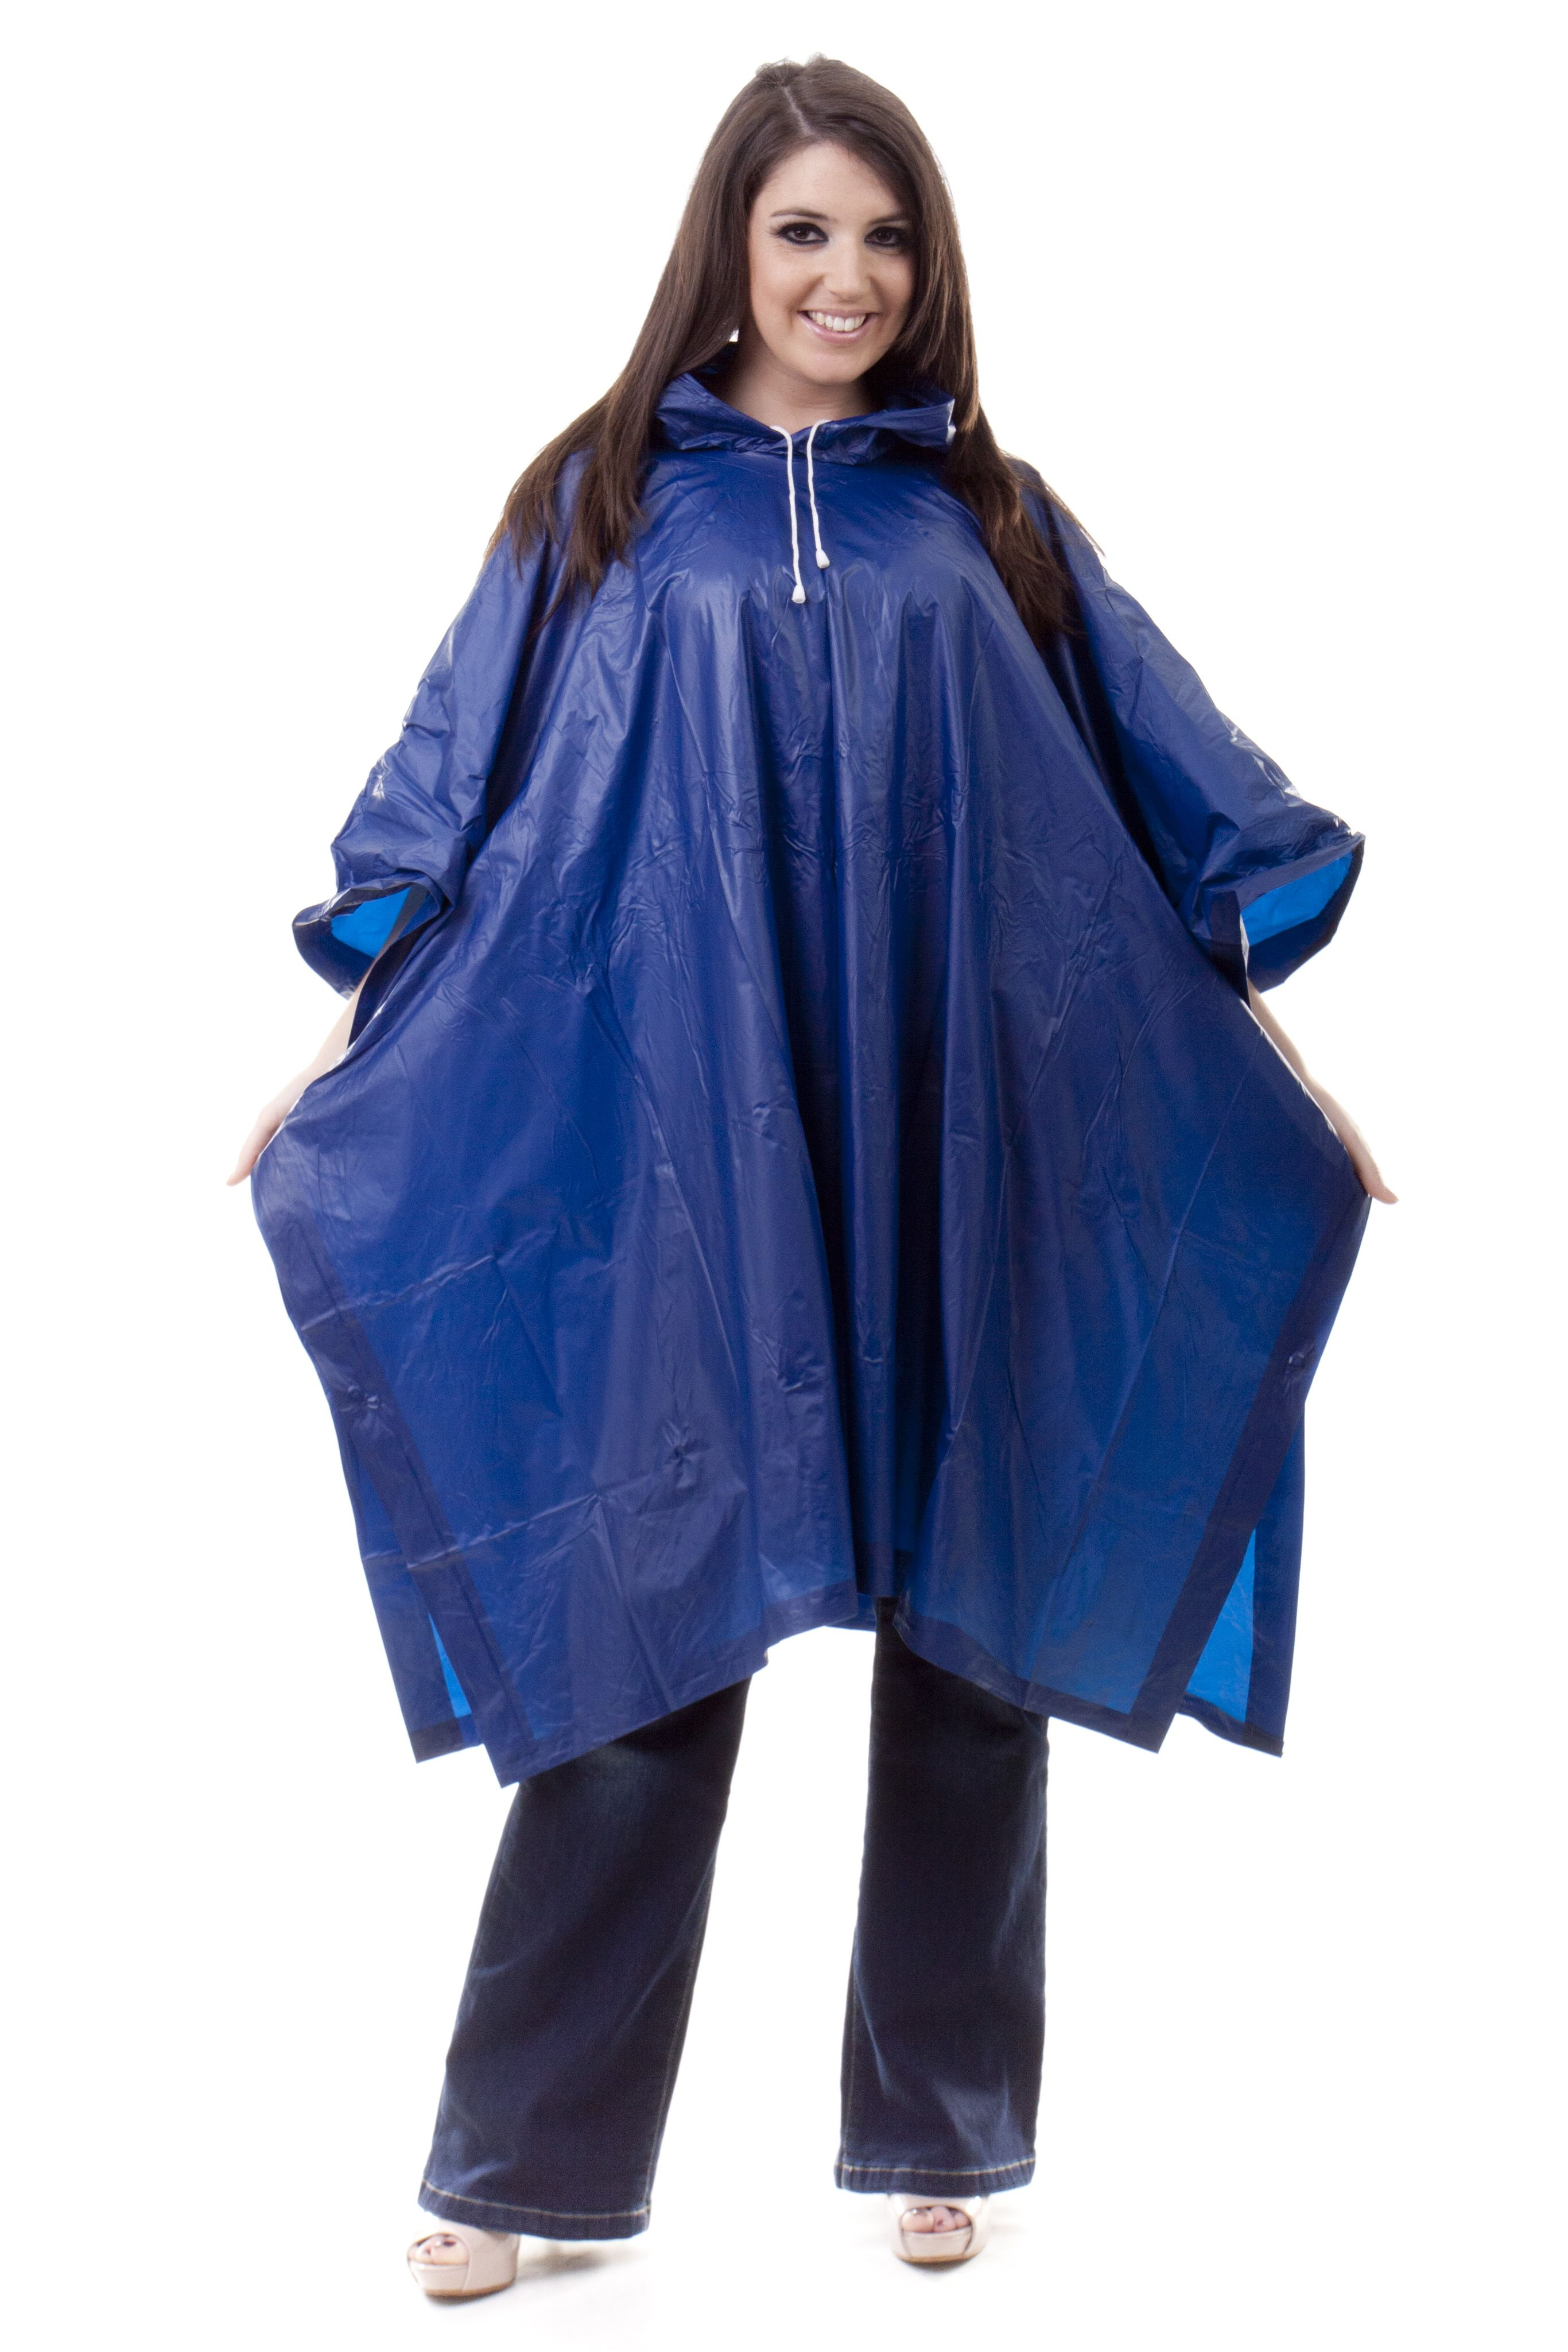 Ponchos for adults